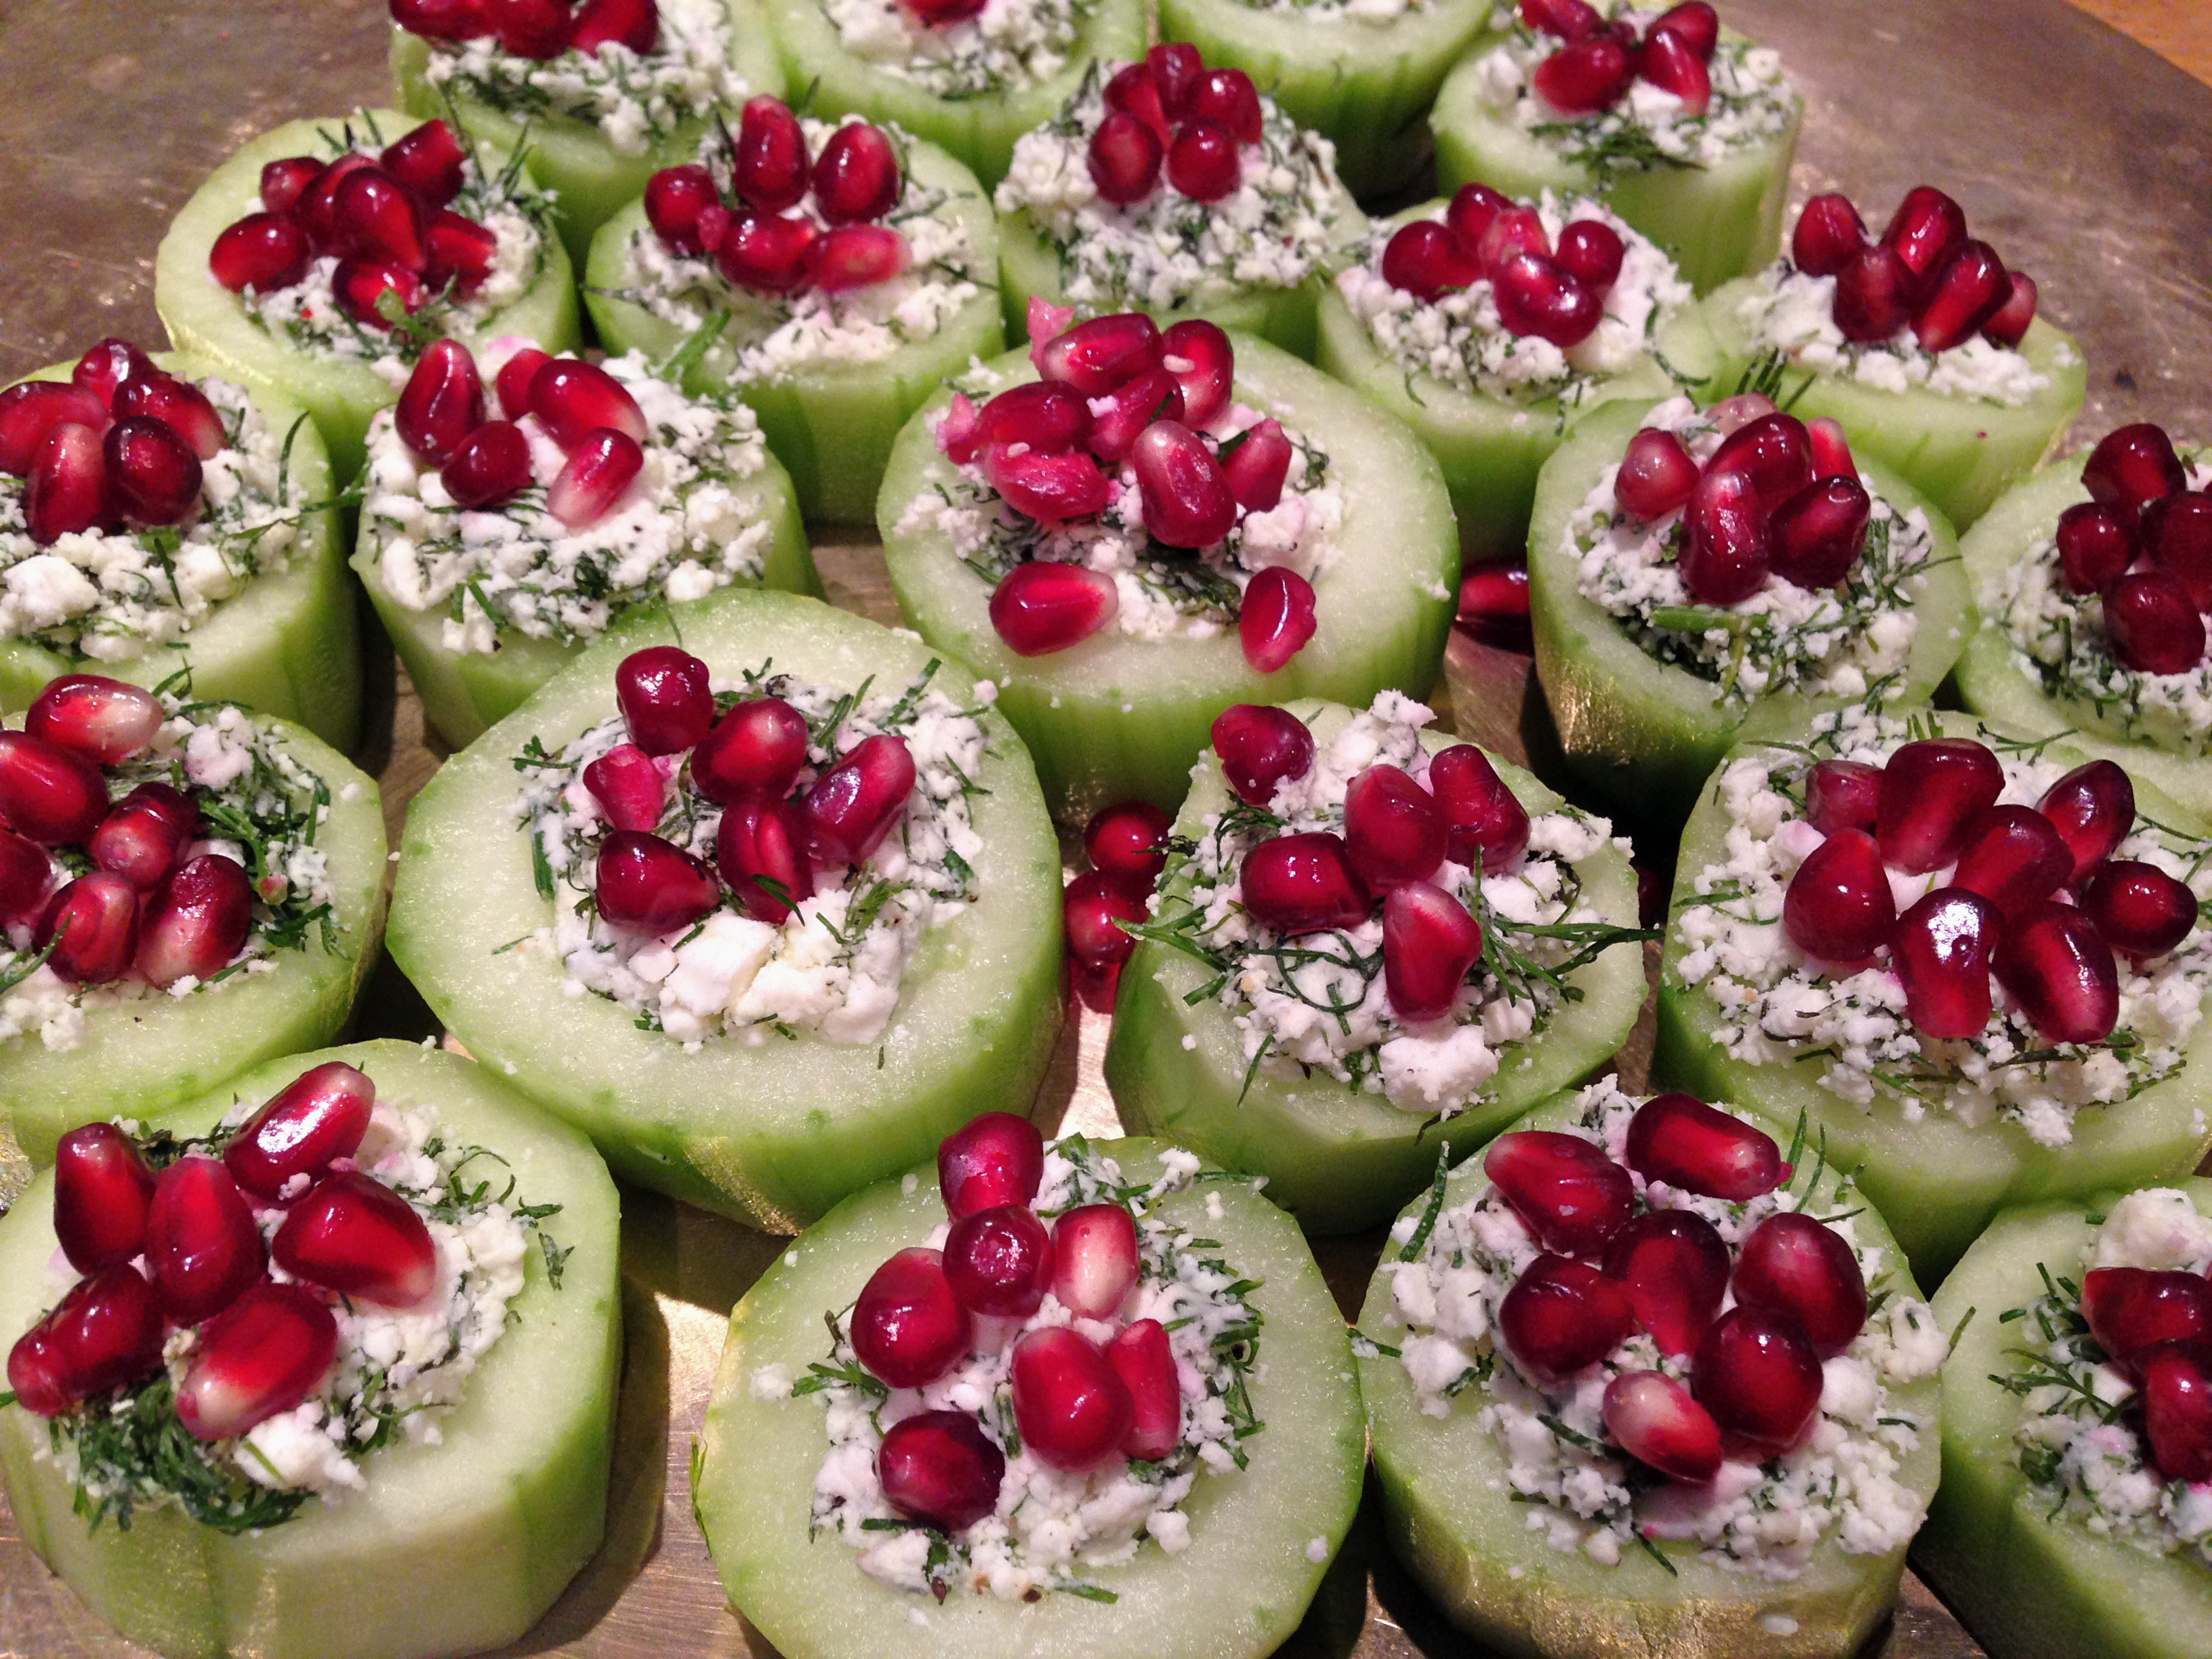 Cucumber cups canap s yes please for Canape companies